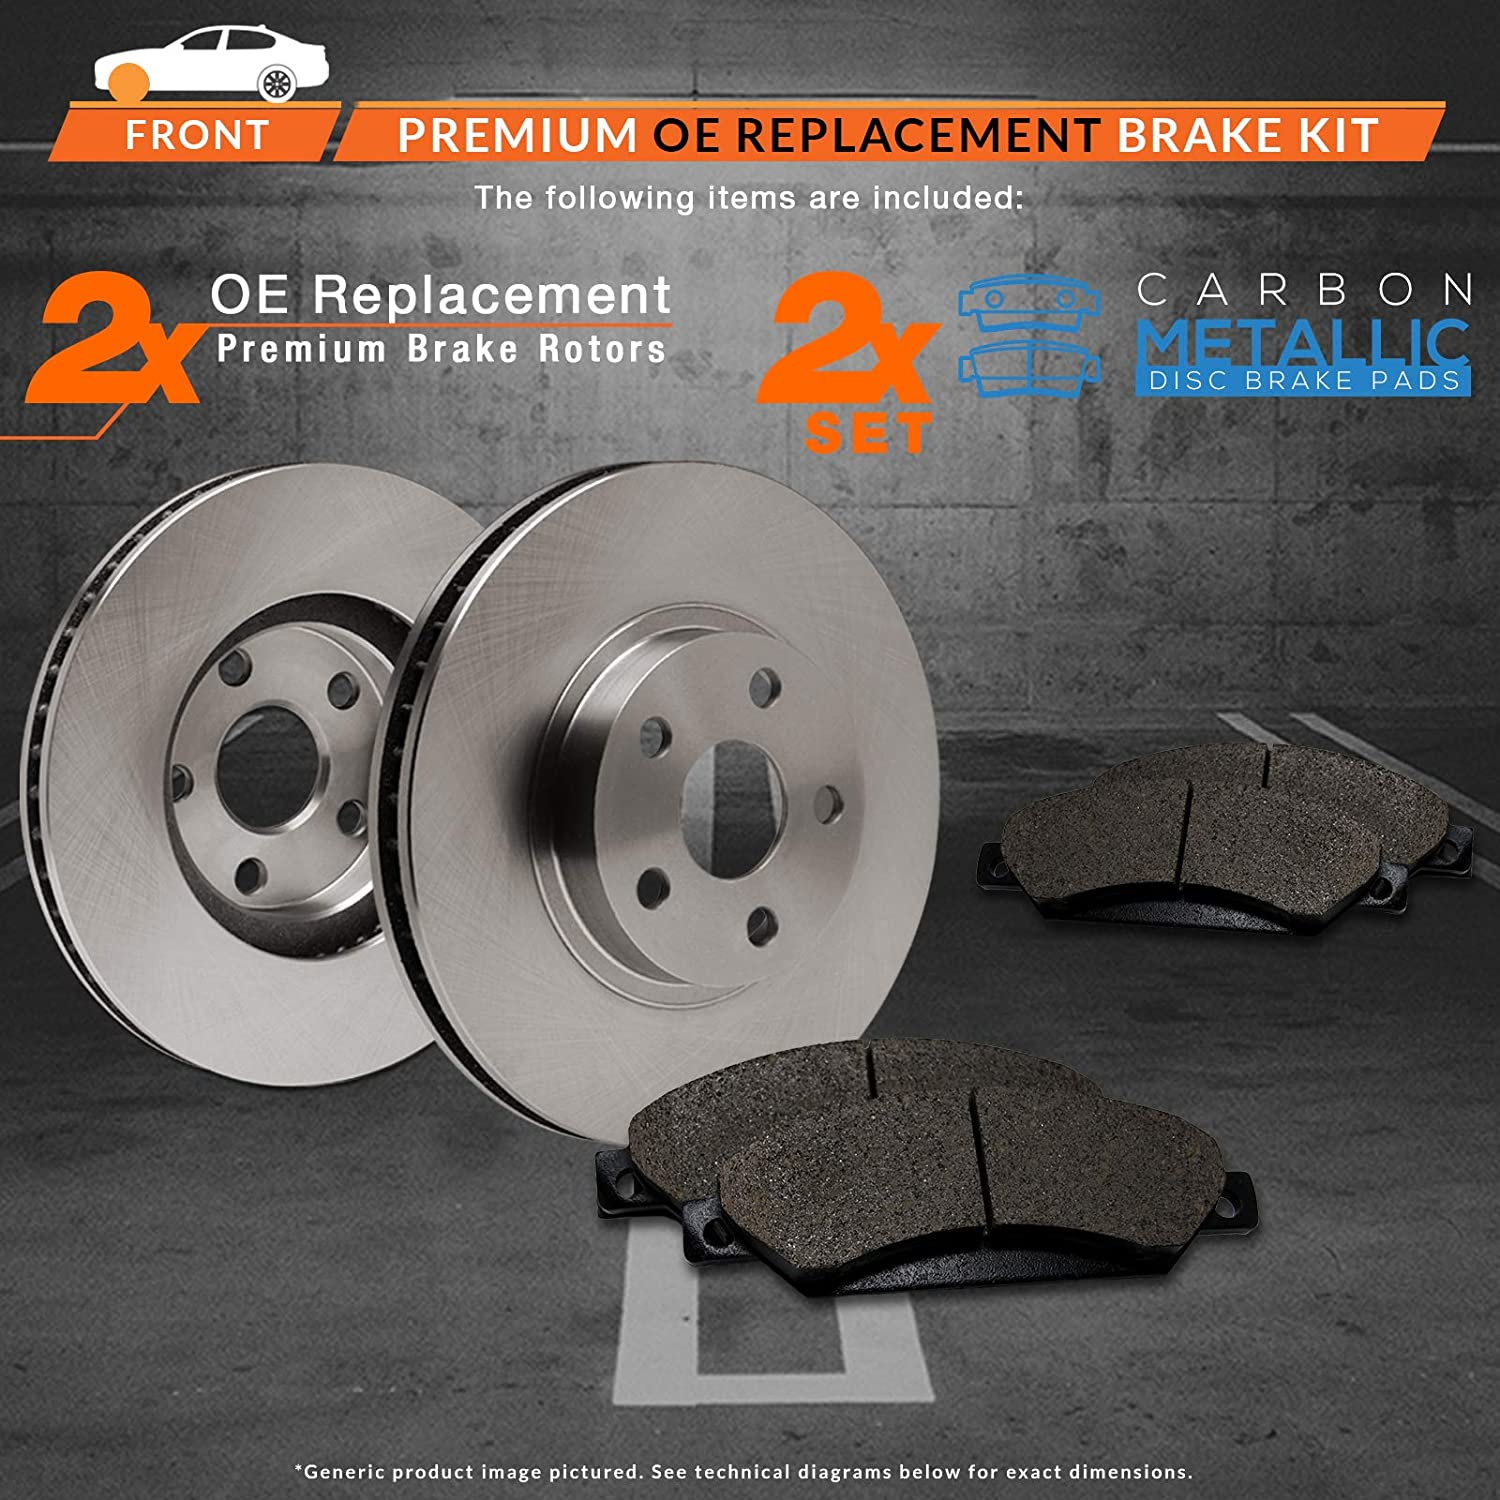 Max Brakes Front Premium Brake Kit OE Series Rotors + Metallic Pads TA135641 Fits: 2011 11 2012 12 2013 13 Ram 2500